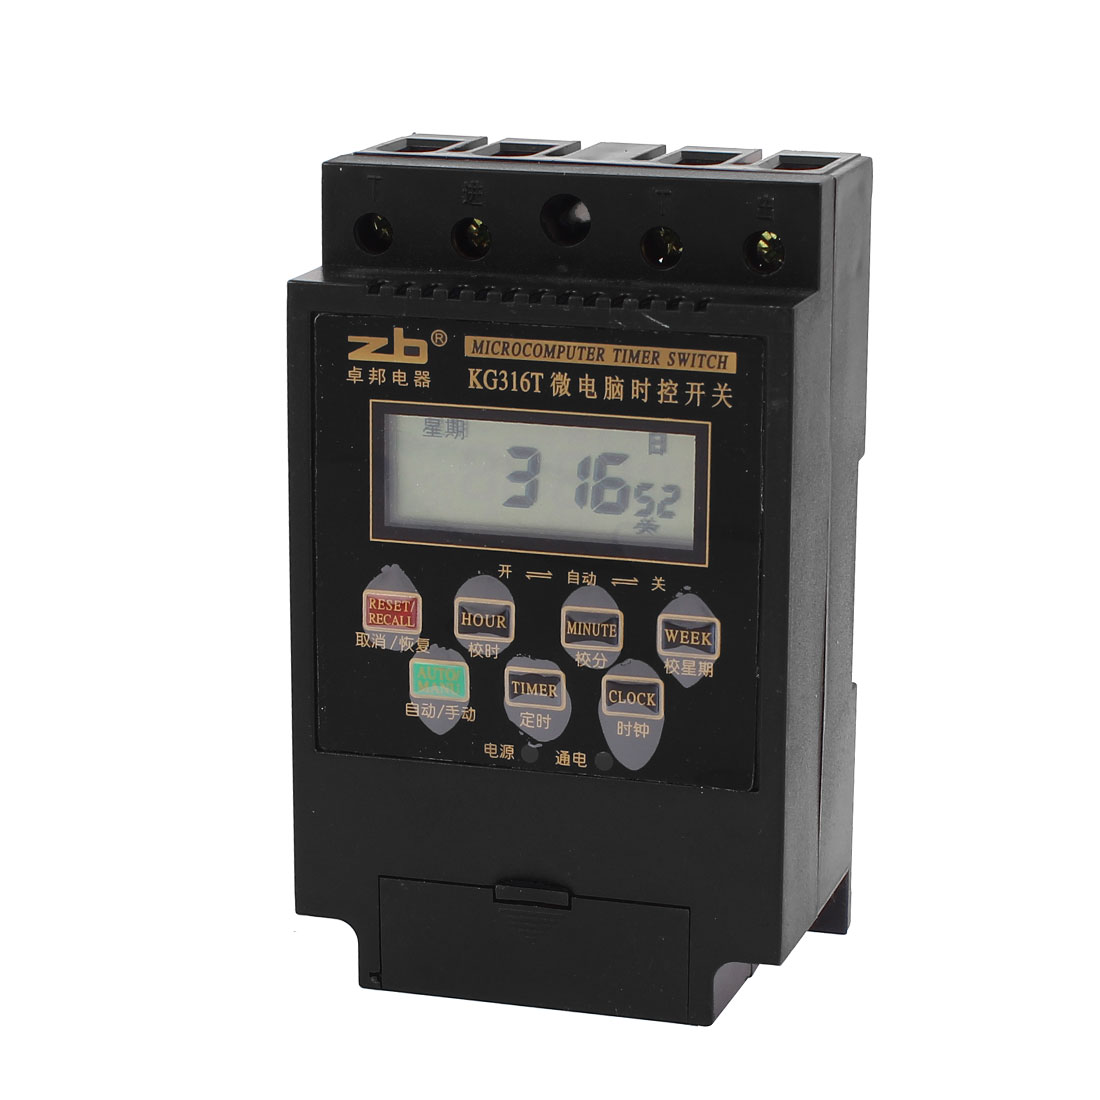 AC 220V LED Display Indicator Microcomputer Timer Time Control Switch